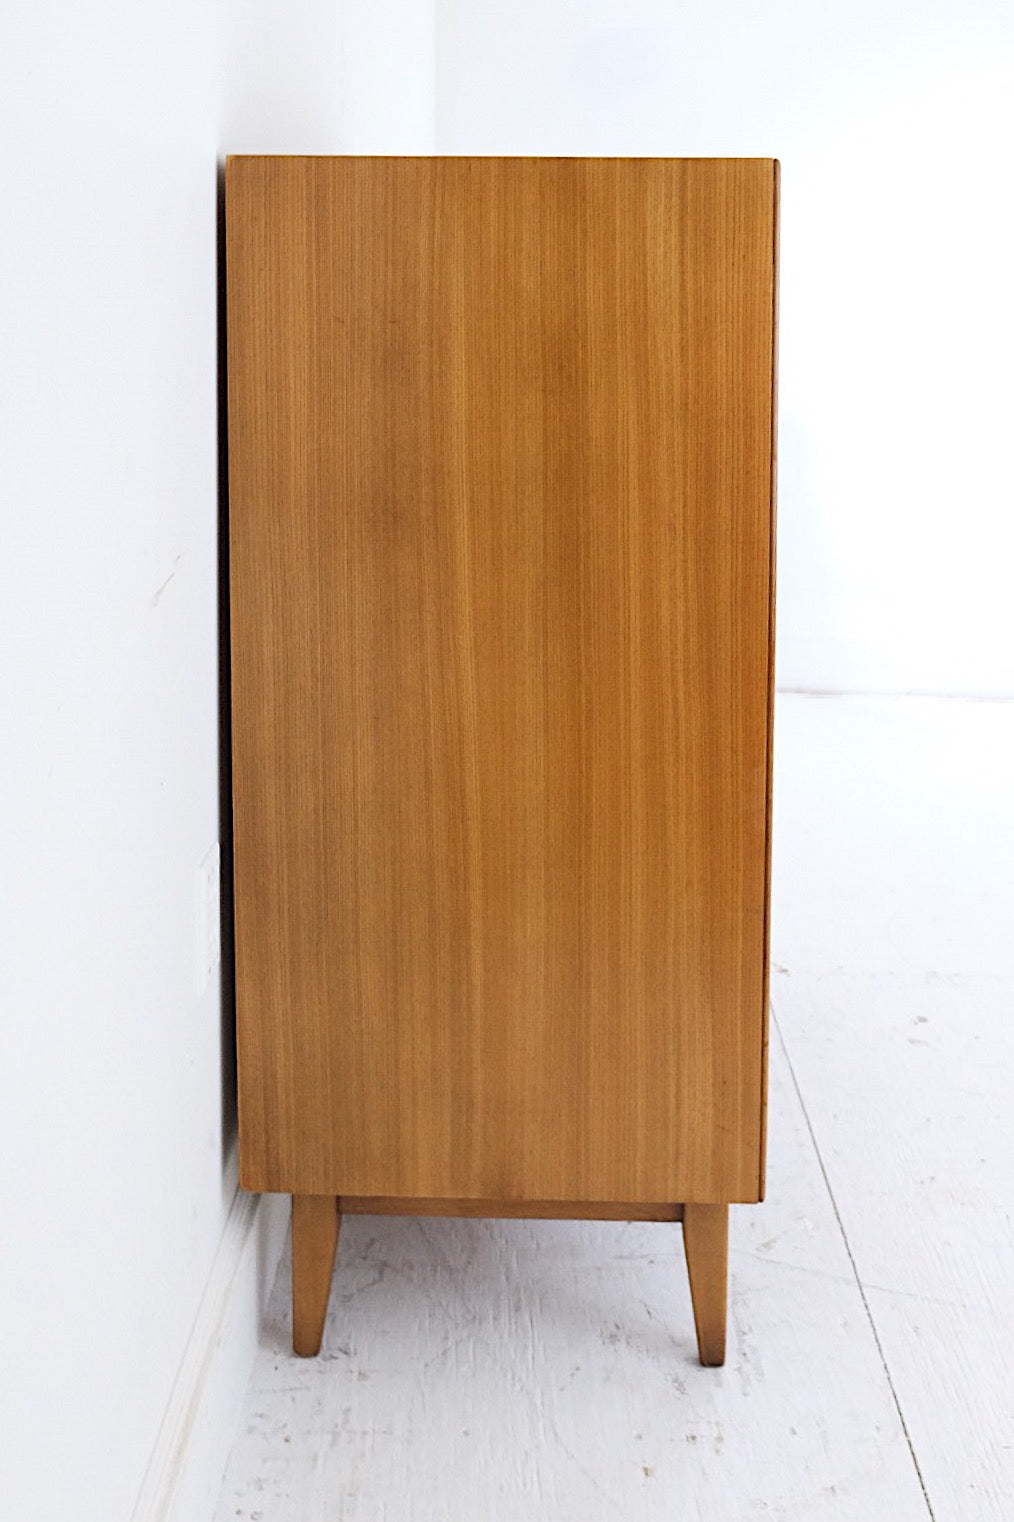 Drexel Mid Century Modern Tall Dresser Five Drawers Jack Cartwright Style Inset Brass Handles